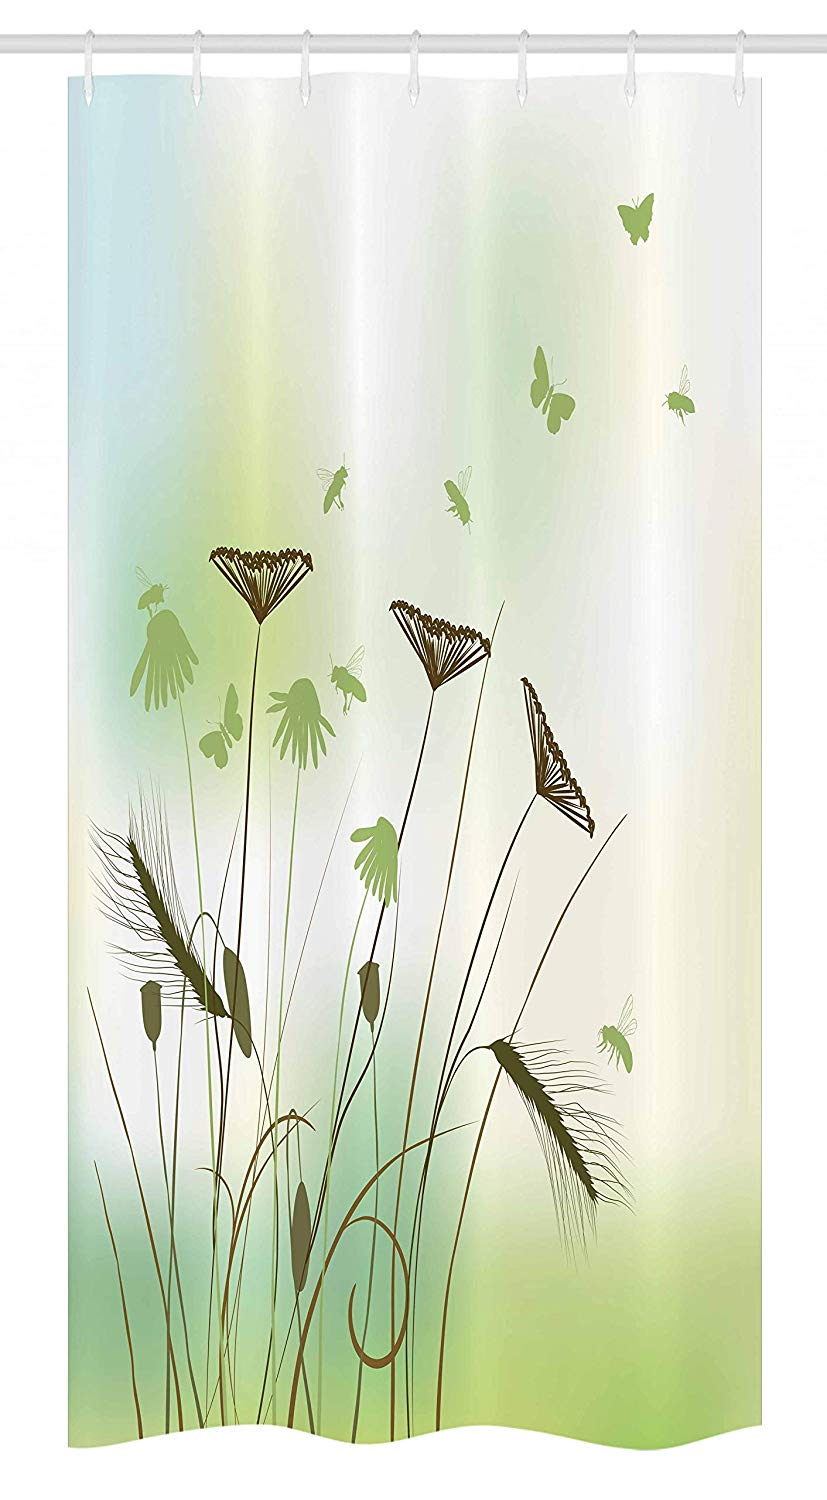 Ambesonne Butterfly Stall Shower Curtain, Silhouette of Dragonflies Bees Butterflies Flying All over the Flowers Spring Theme, Fabric Bathroom Decor Set with Hooks, 36 W x 72 L Inches, Green